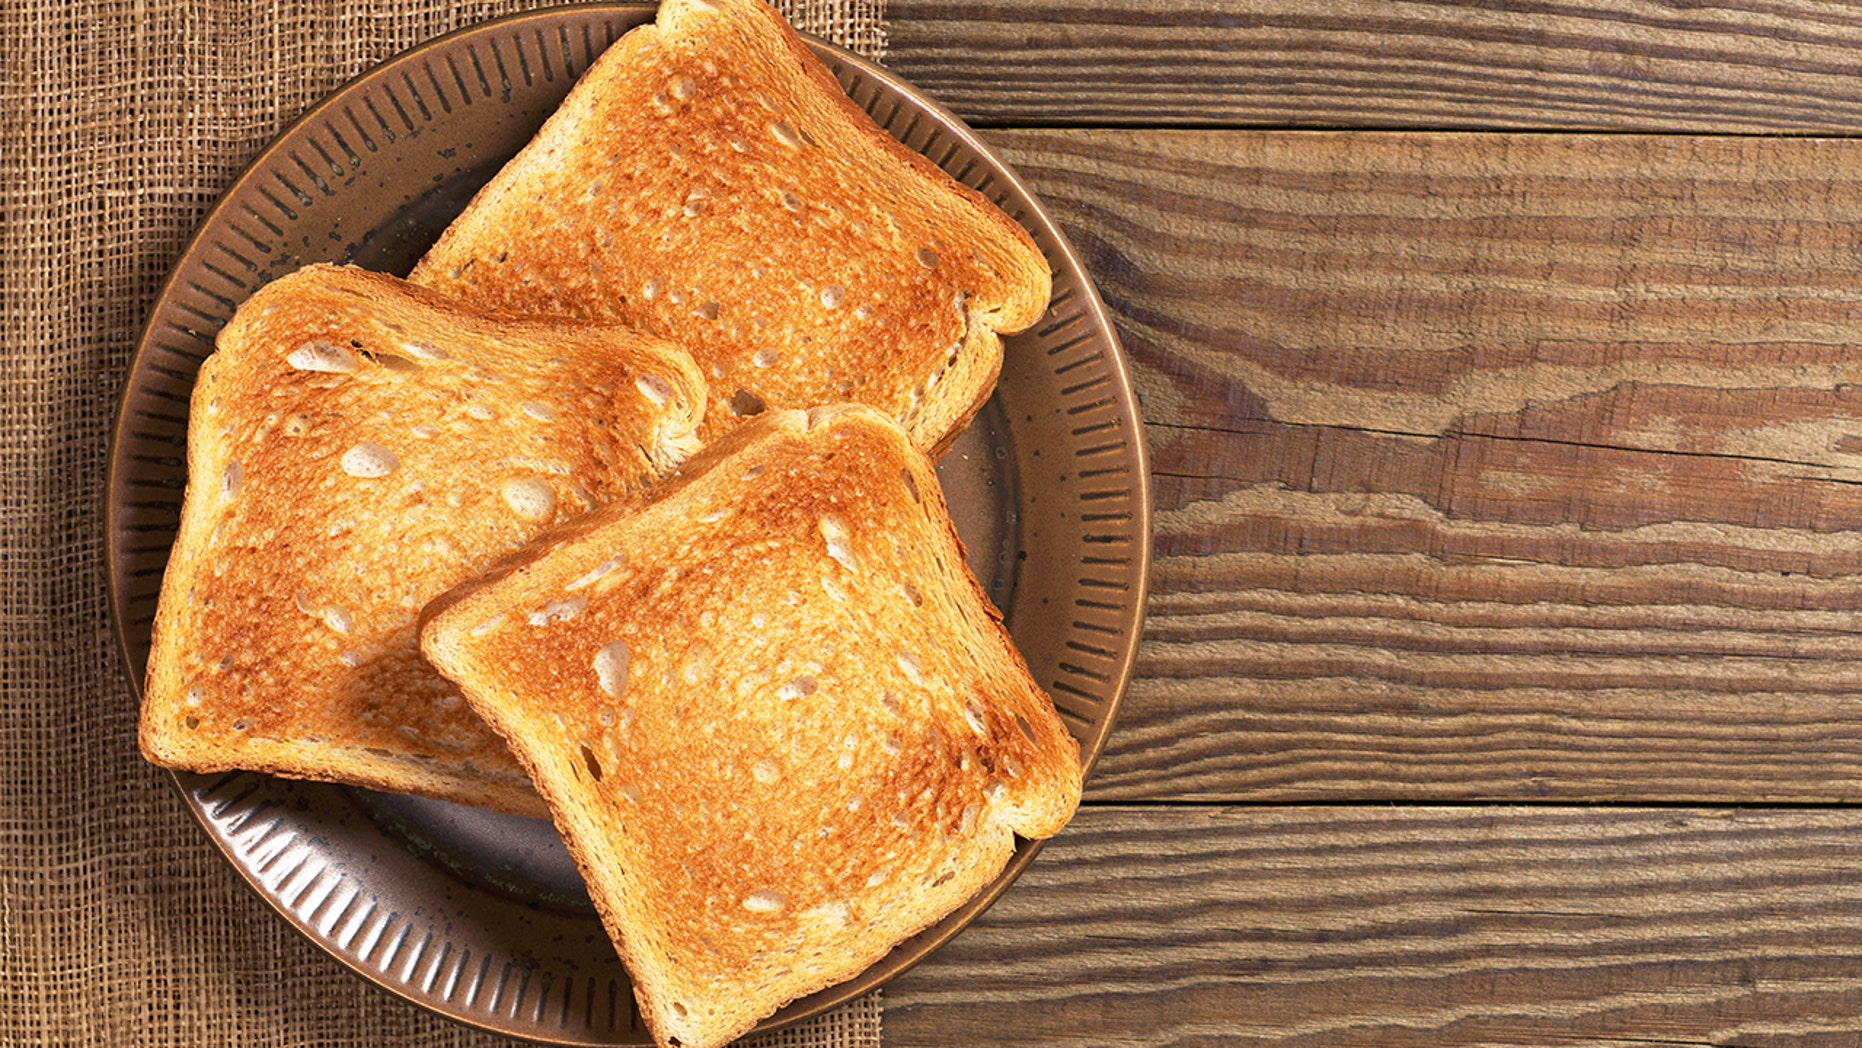 Is there a right way to cut toast? The internet has some strong opinions...